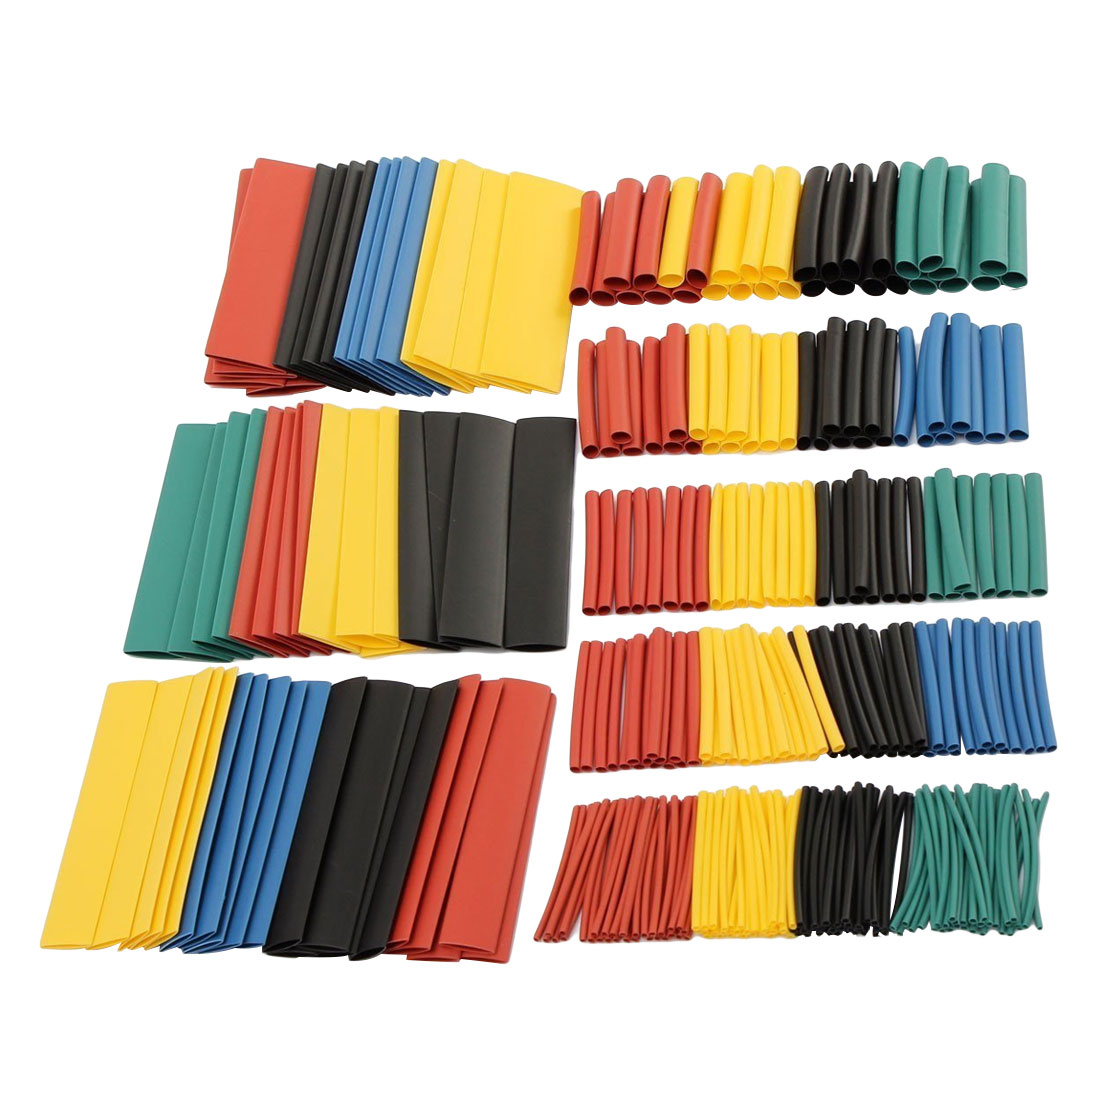 328Pcs 8 Sizes Multi Color Polyolefin 2:1 Halogen-Free Heat Shrink Tubing Tube Assortment Sleeving Wrap Tubes